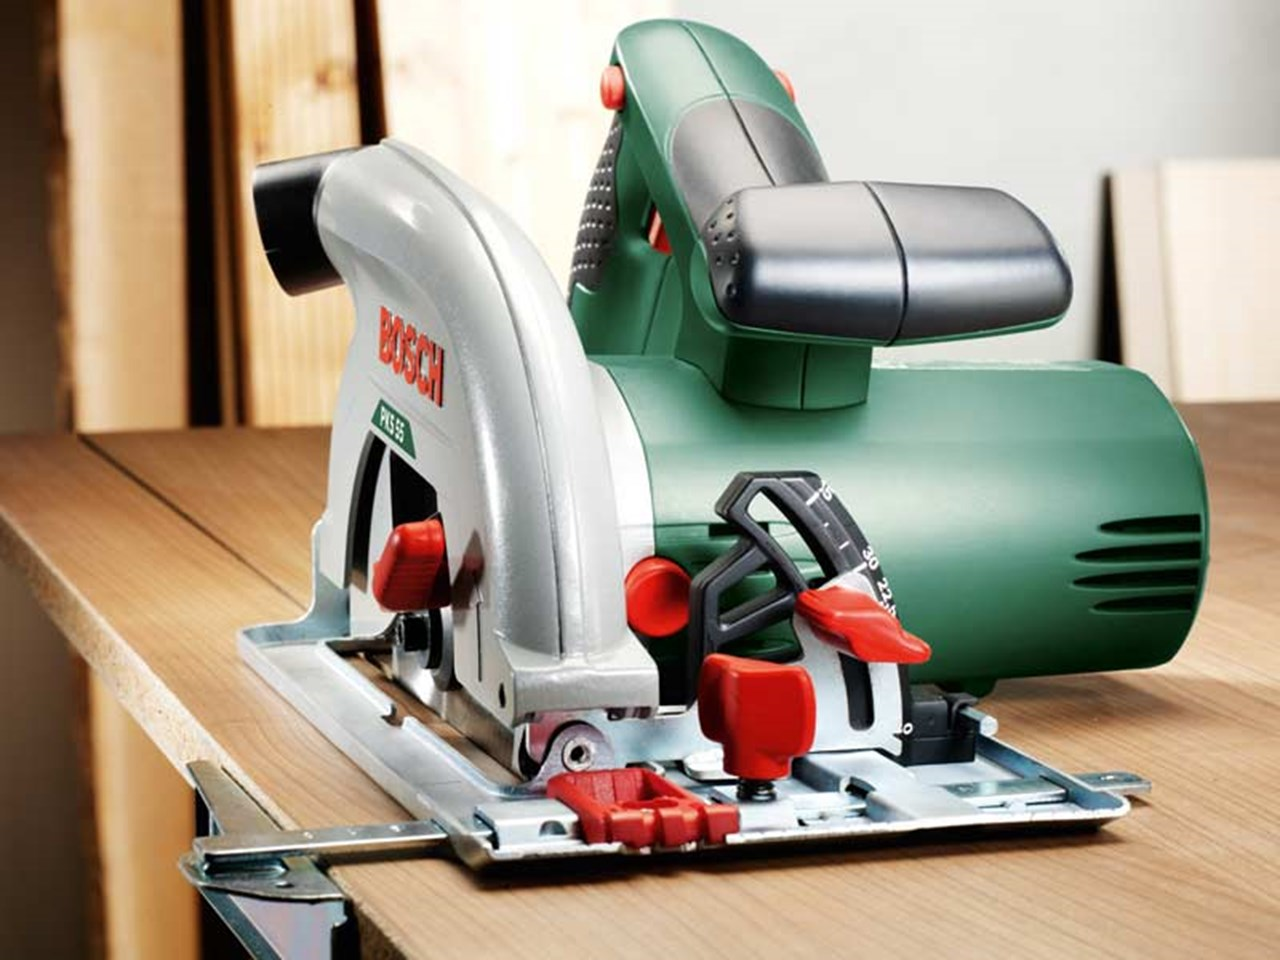 bosch green pks 55 230v 1200w 160mm circular saw. Black Bedroom Furniture Sets. Home Design Ideas